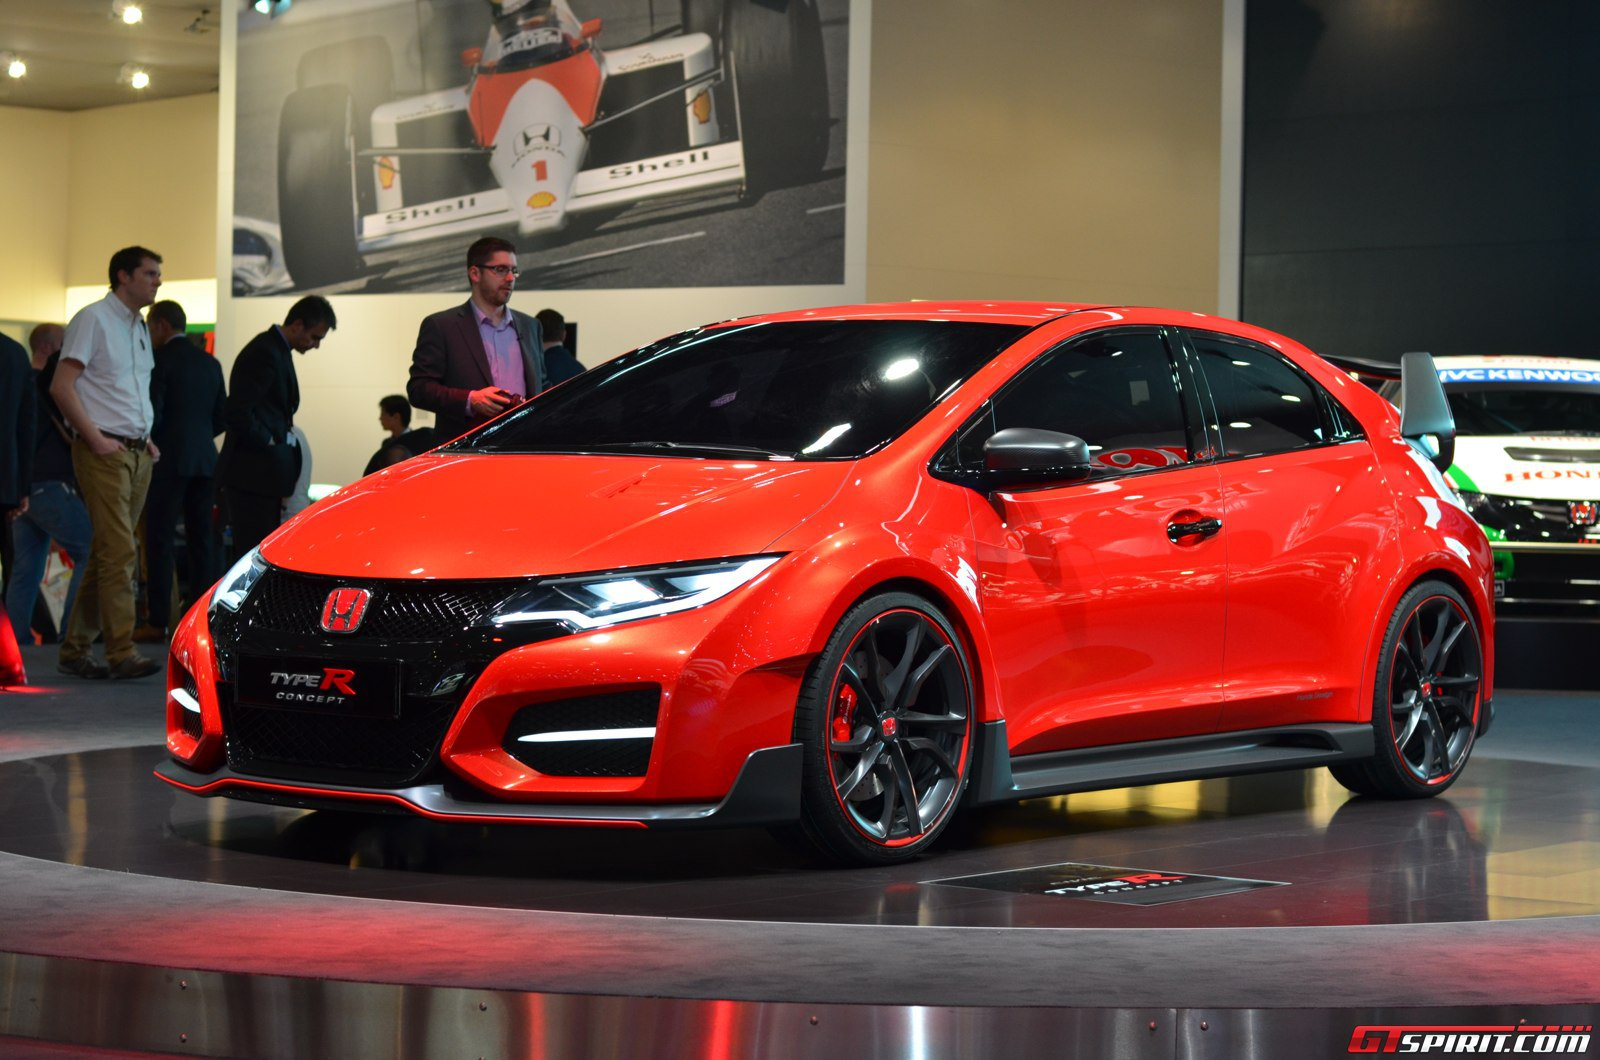 2019 Honda Civic Type R photo - 6